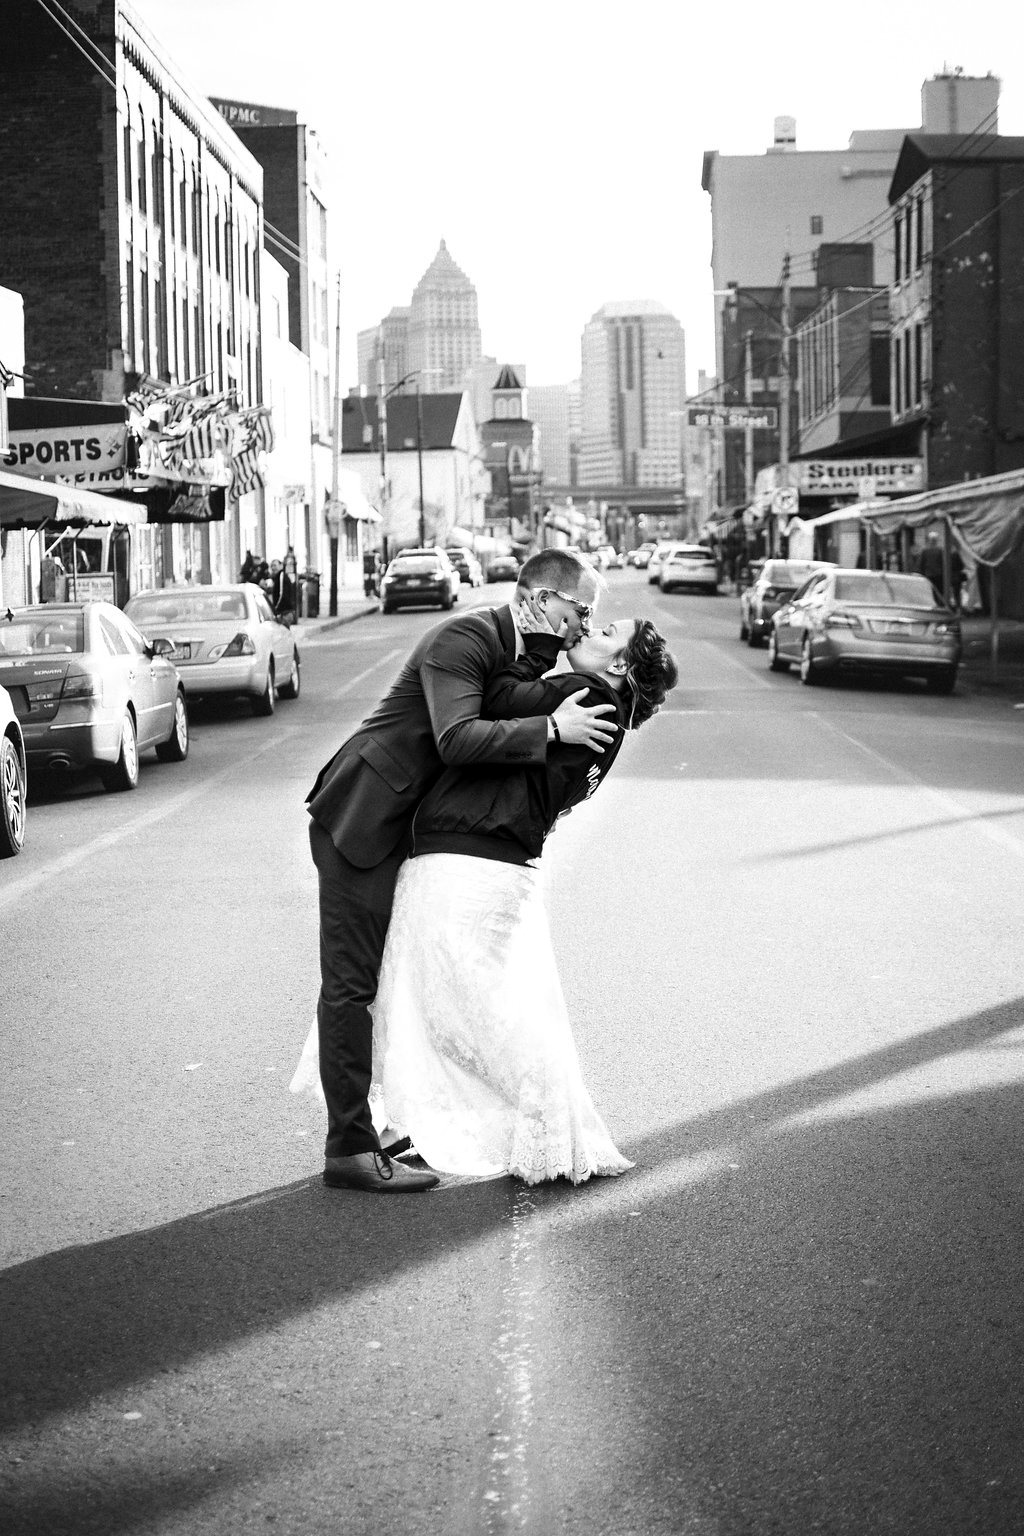 Graffiti Infused City Wedding Inspiration in Pittsburgh Strip District (190).jpg